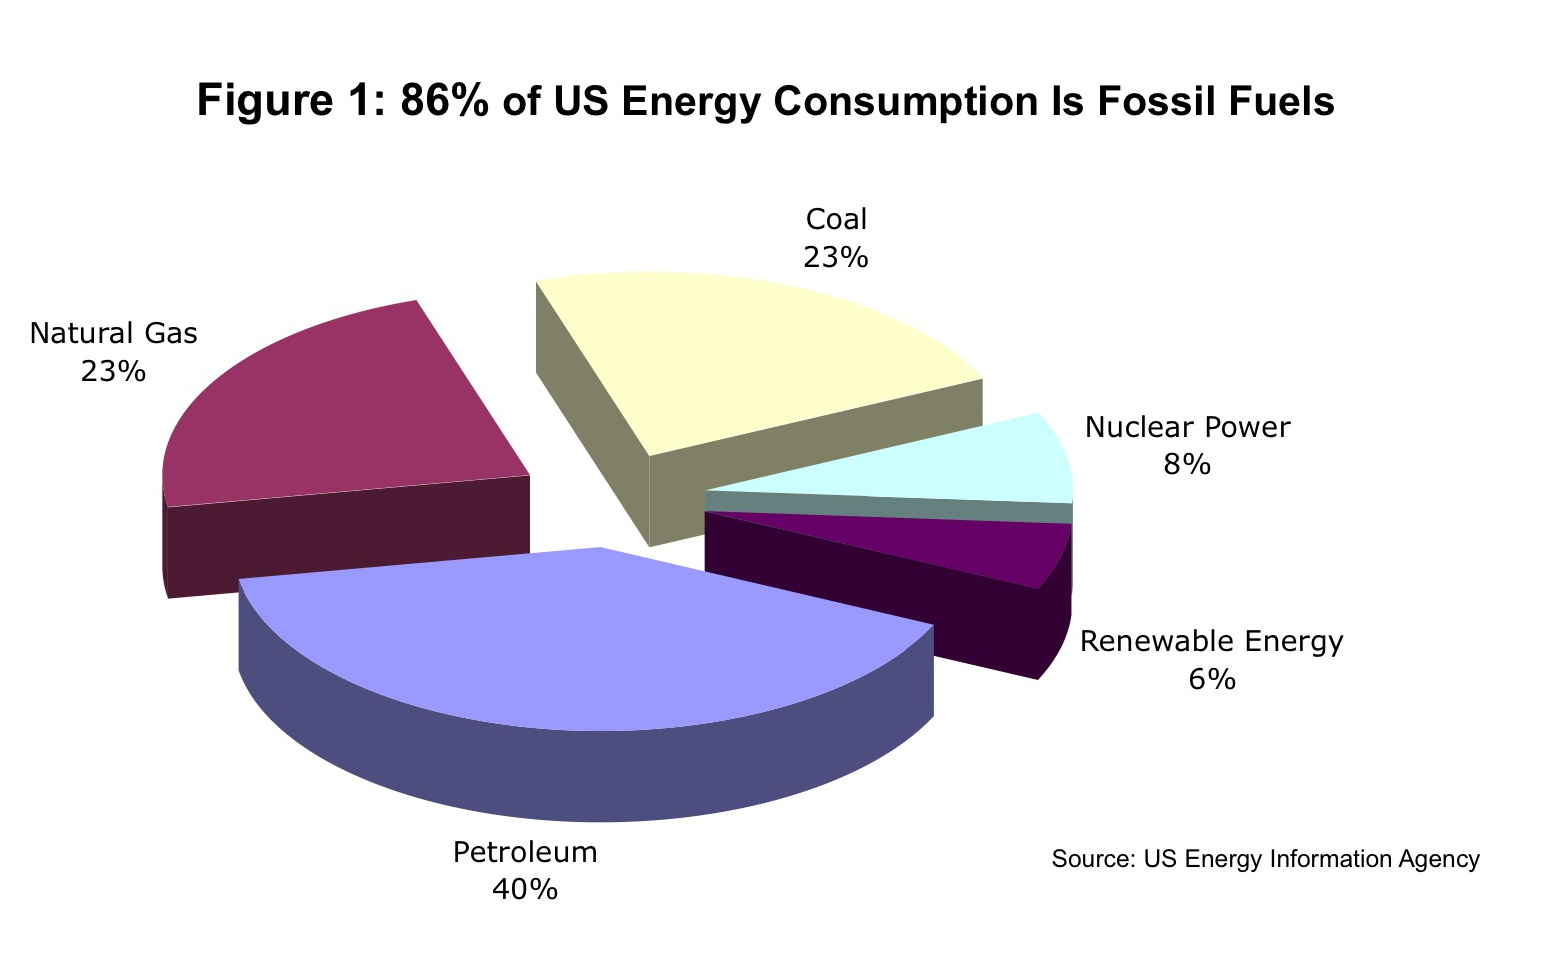 essay on fossil fuels writing an essay com the dark shadow shrine  why skeptics should encourage energy use from fossil fuels where fossil fuel piechart cherish friendship essays